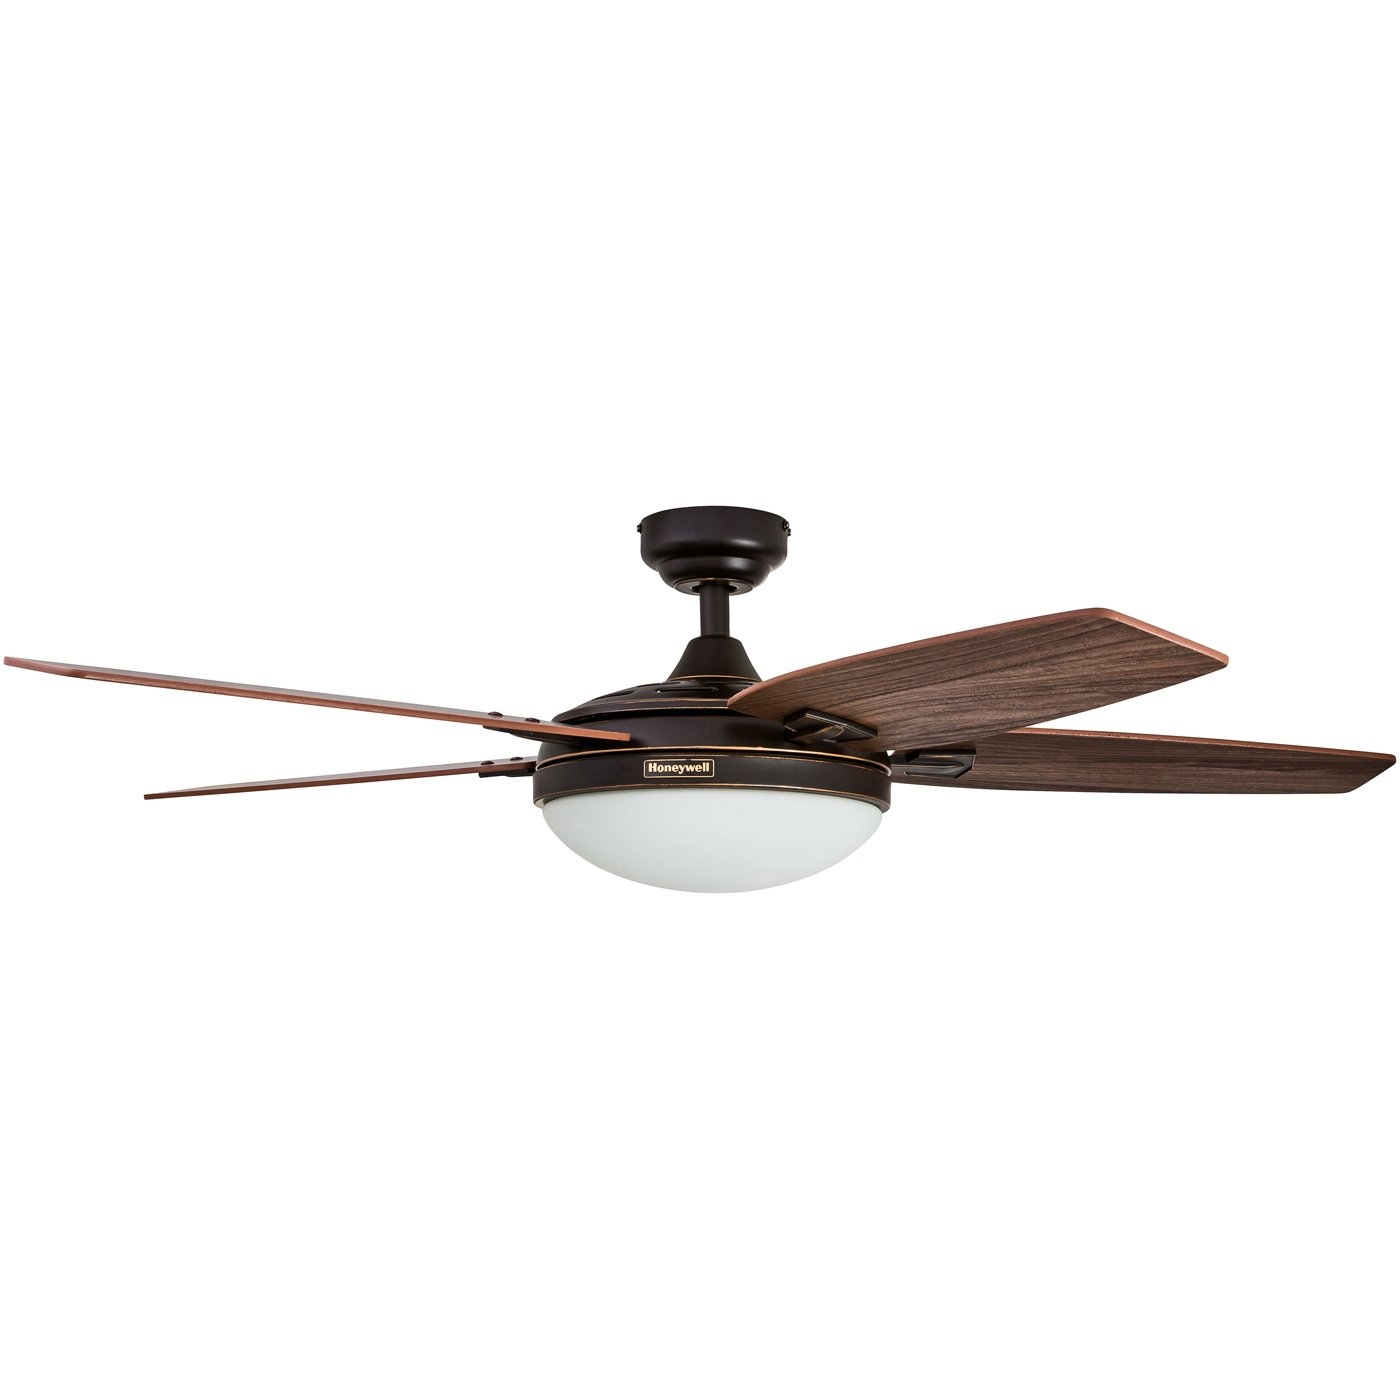 Honeywell Duvall 52-Inch Tropical Ceiling Fan, Five Wet Rated Wicker Blades, Indoor/Outdoor, White by Honeywell Ceiling Fans (Image #10)